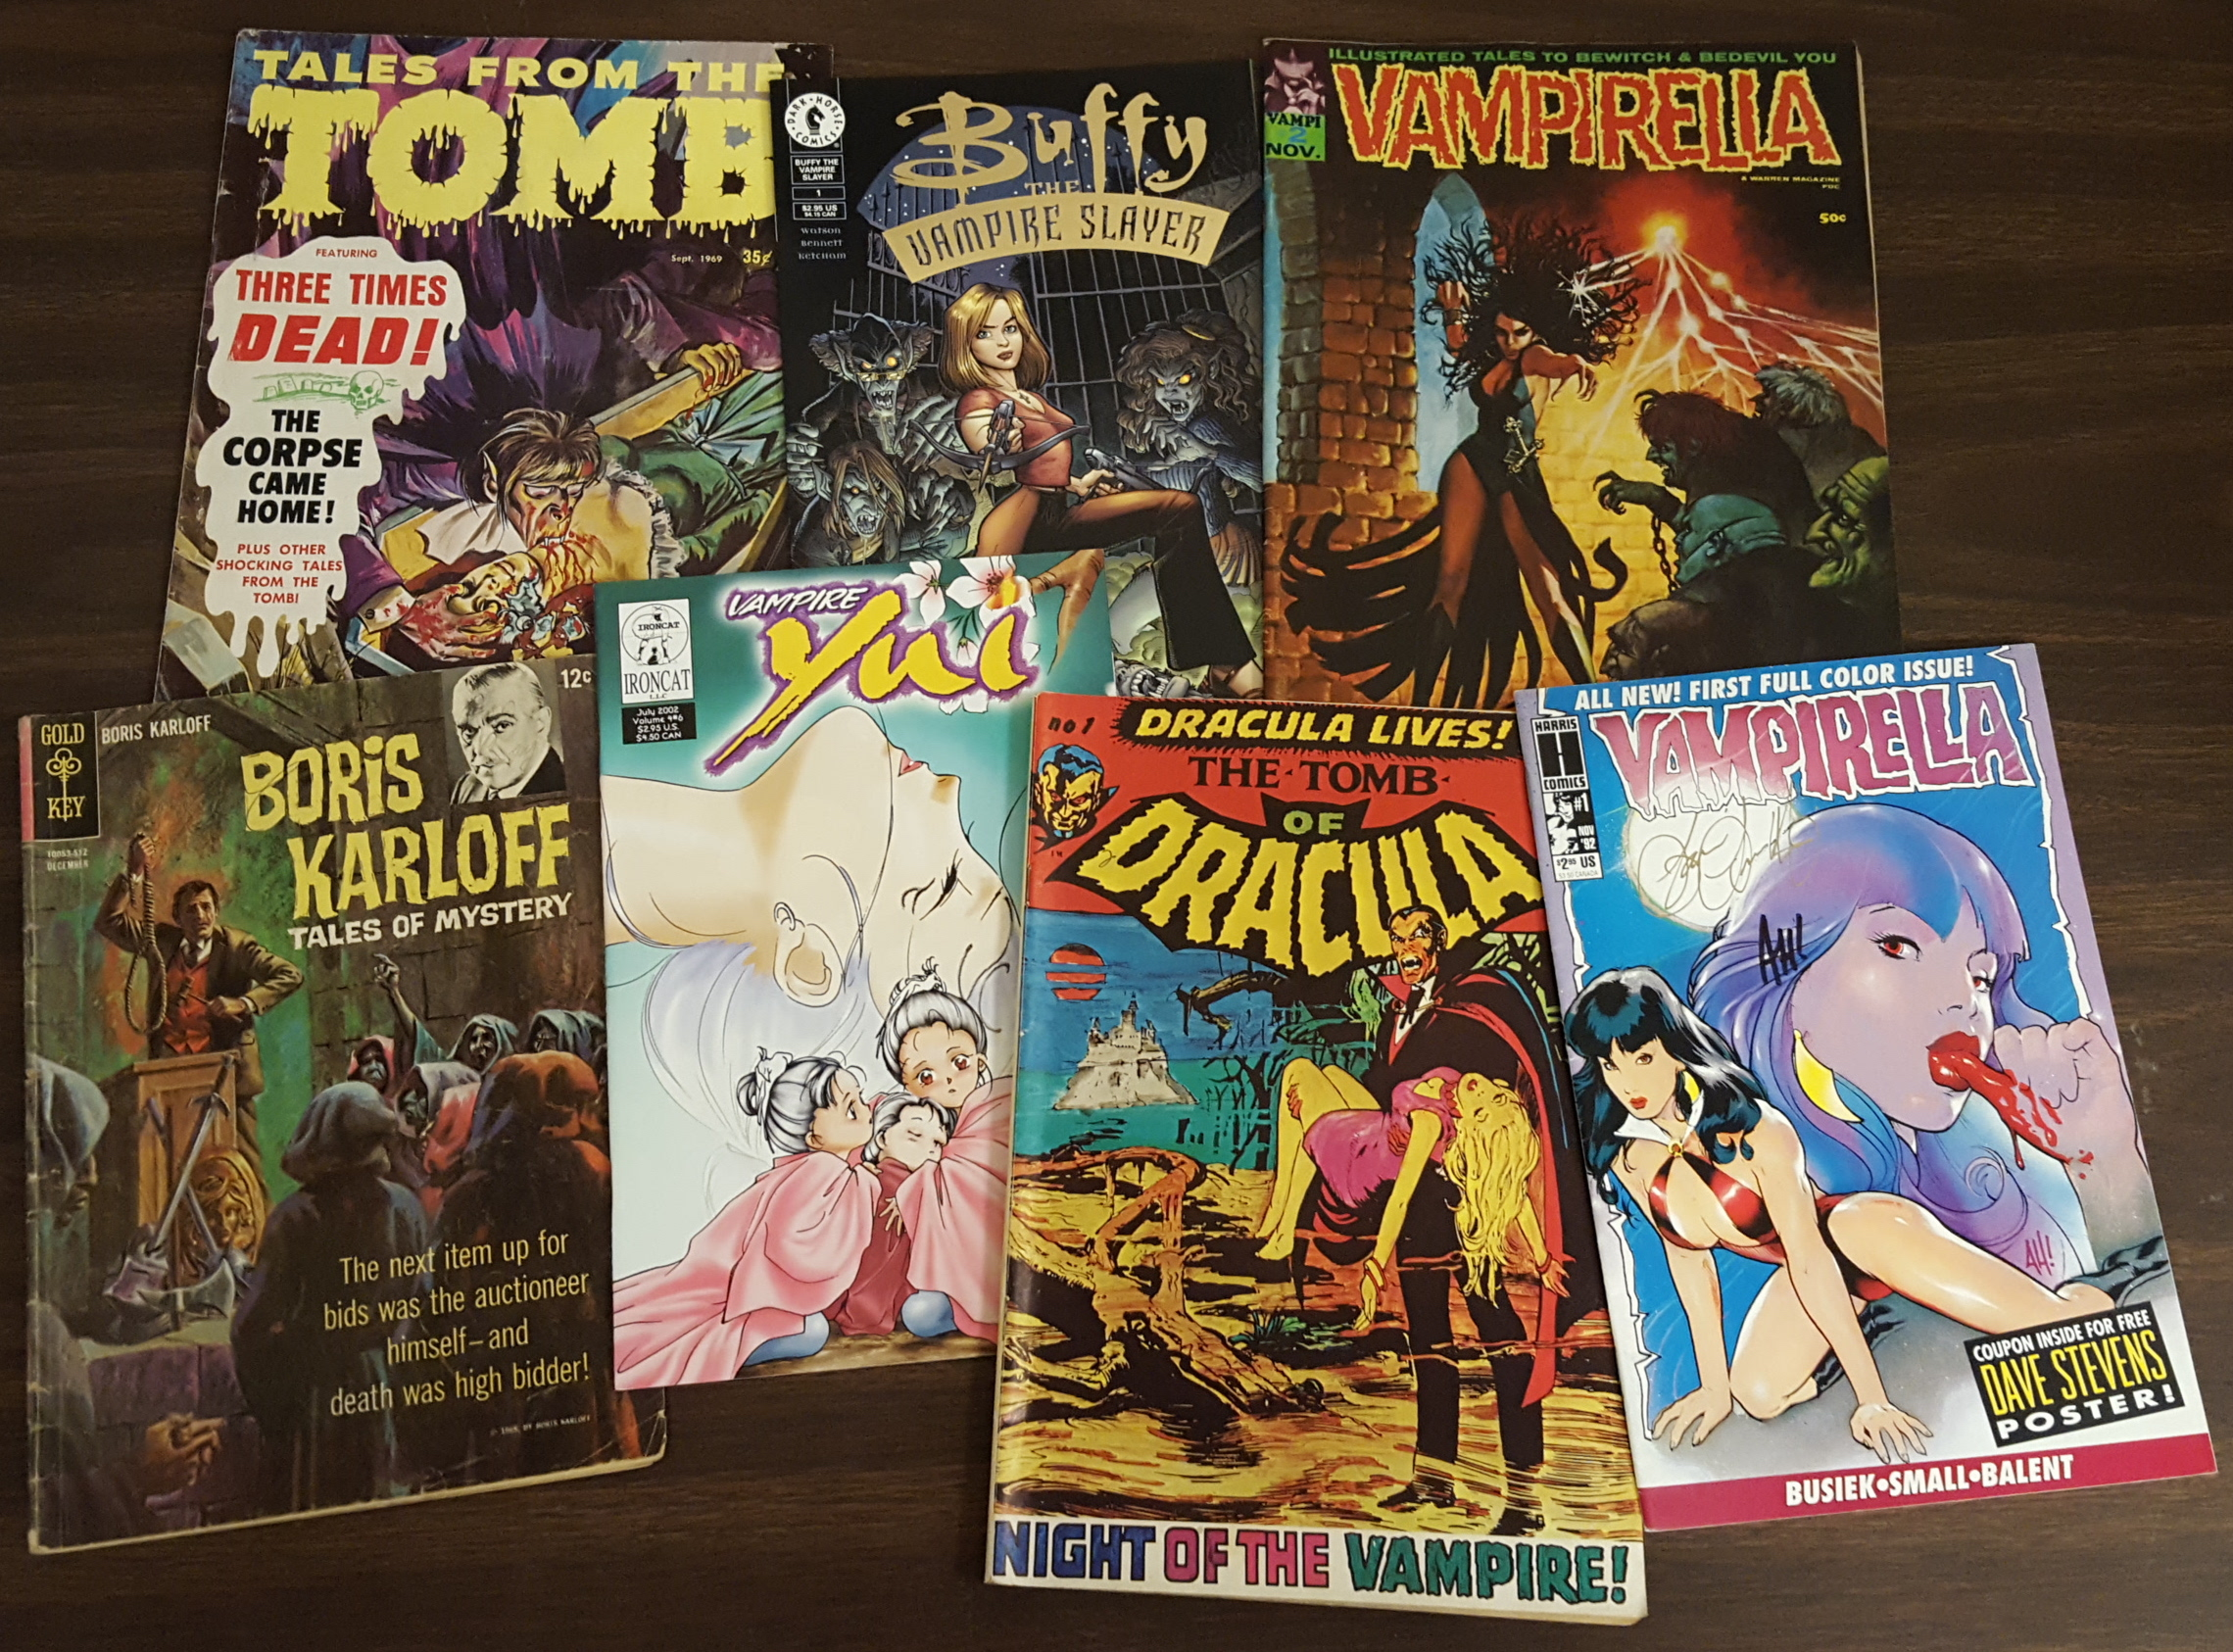 Image 5: A sampling of signed titles from the J. Gordon Melton Vampire Collection, including Vampirella, Tomb of Dracula, and Buffy the Vampire Slayer.